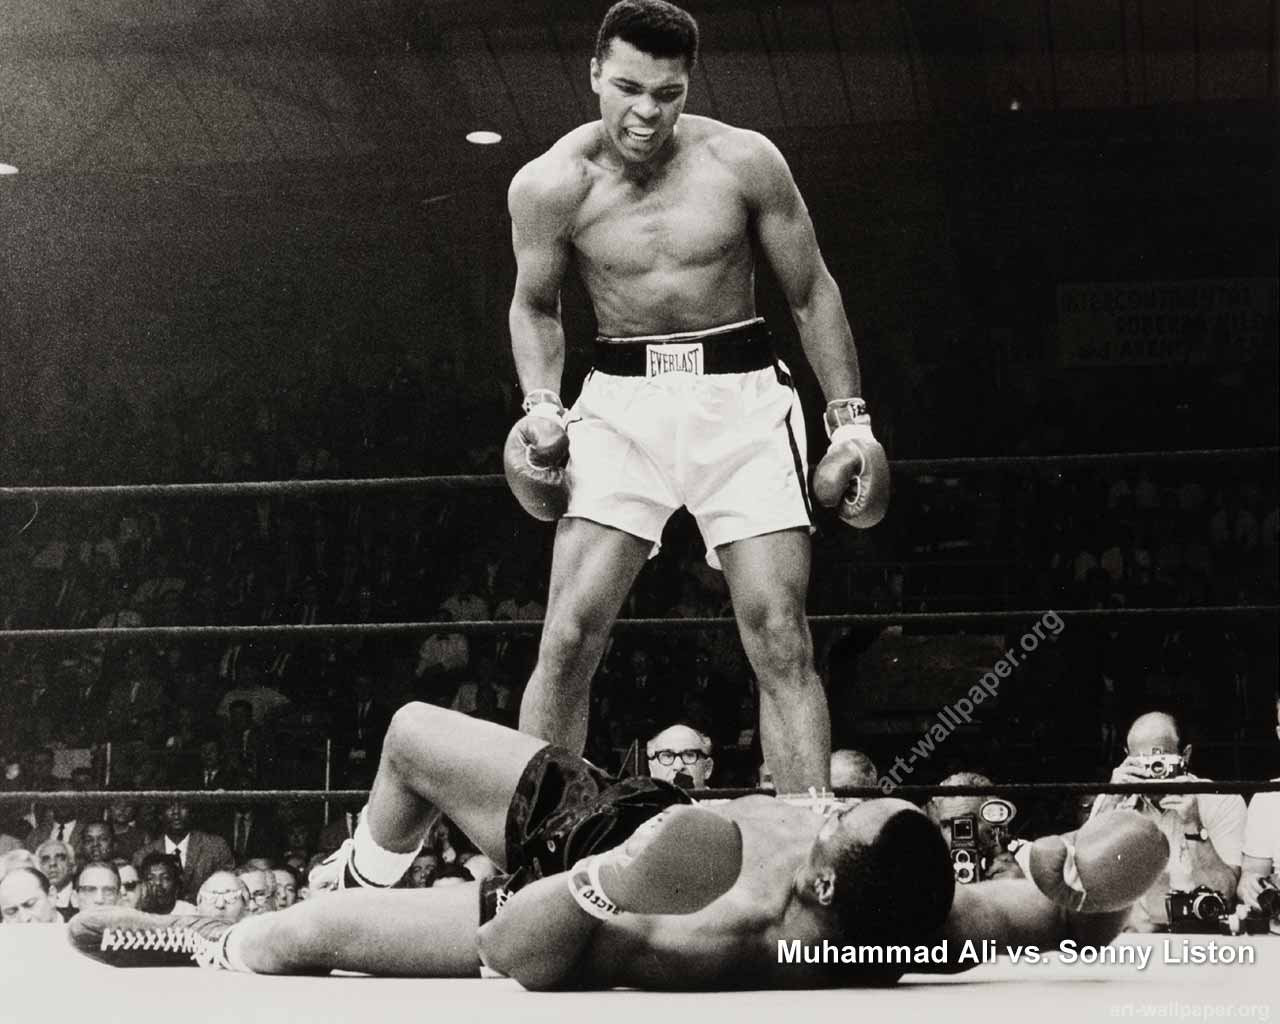 ali vs liston coloring pages - photo#4